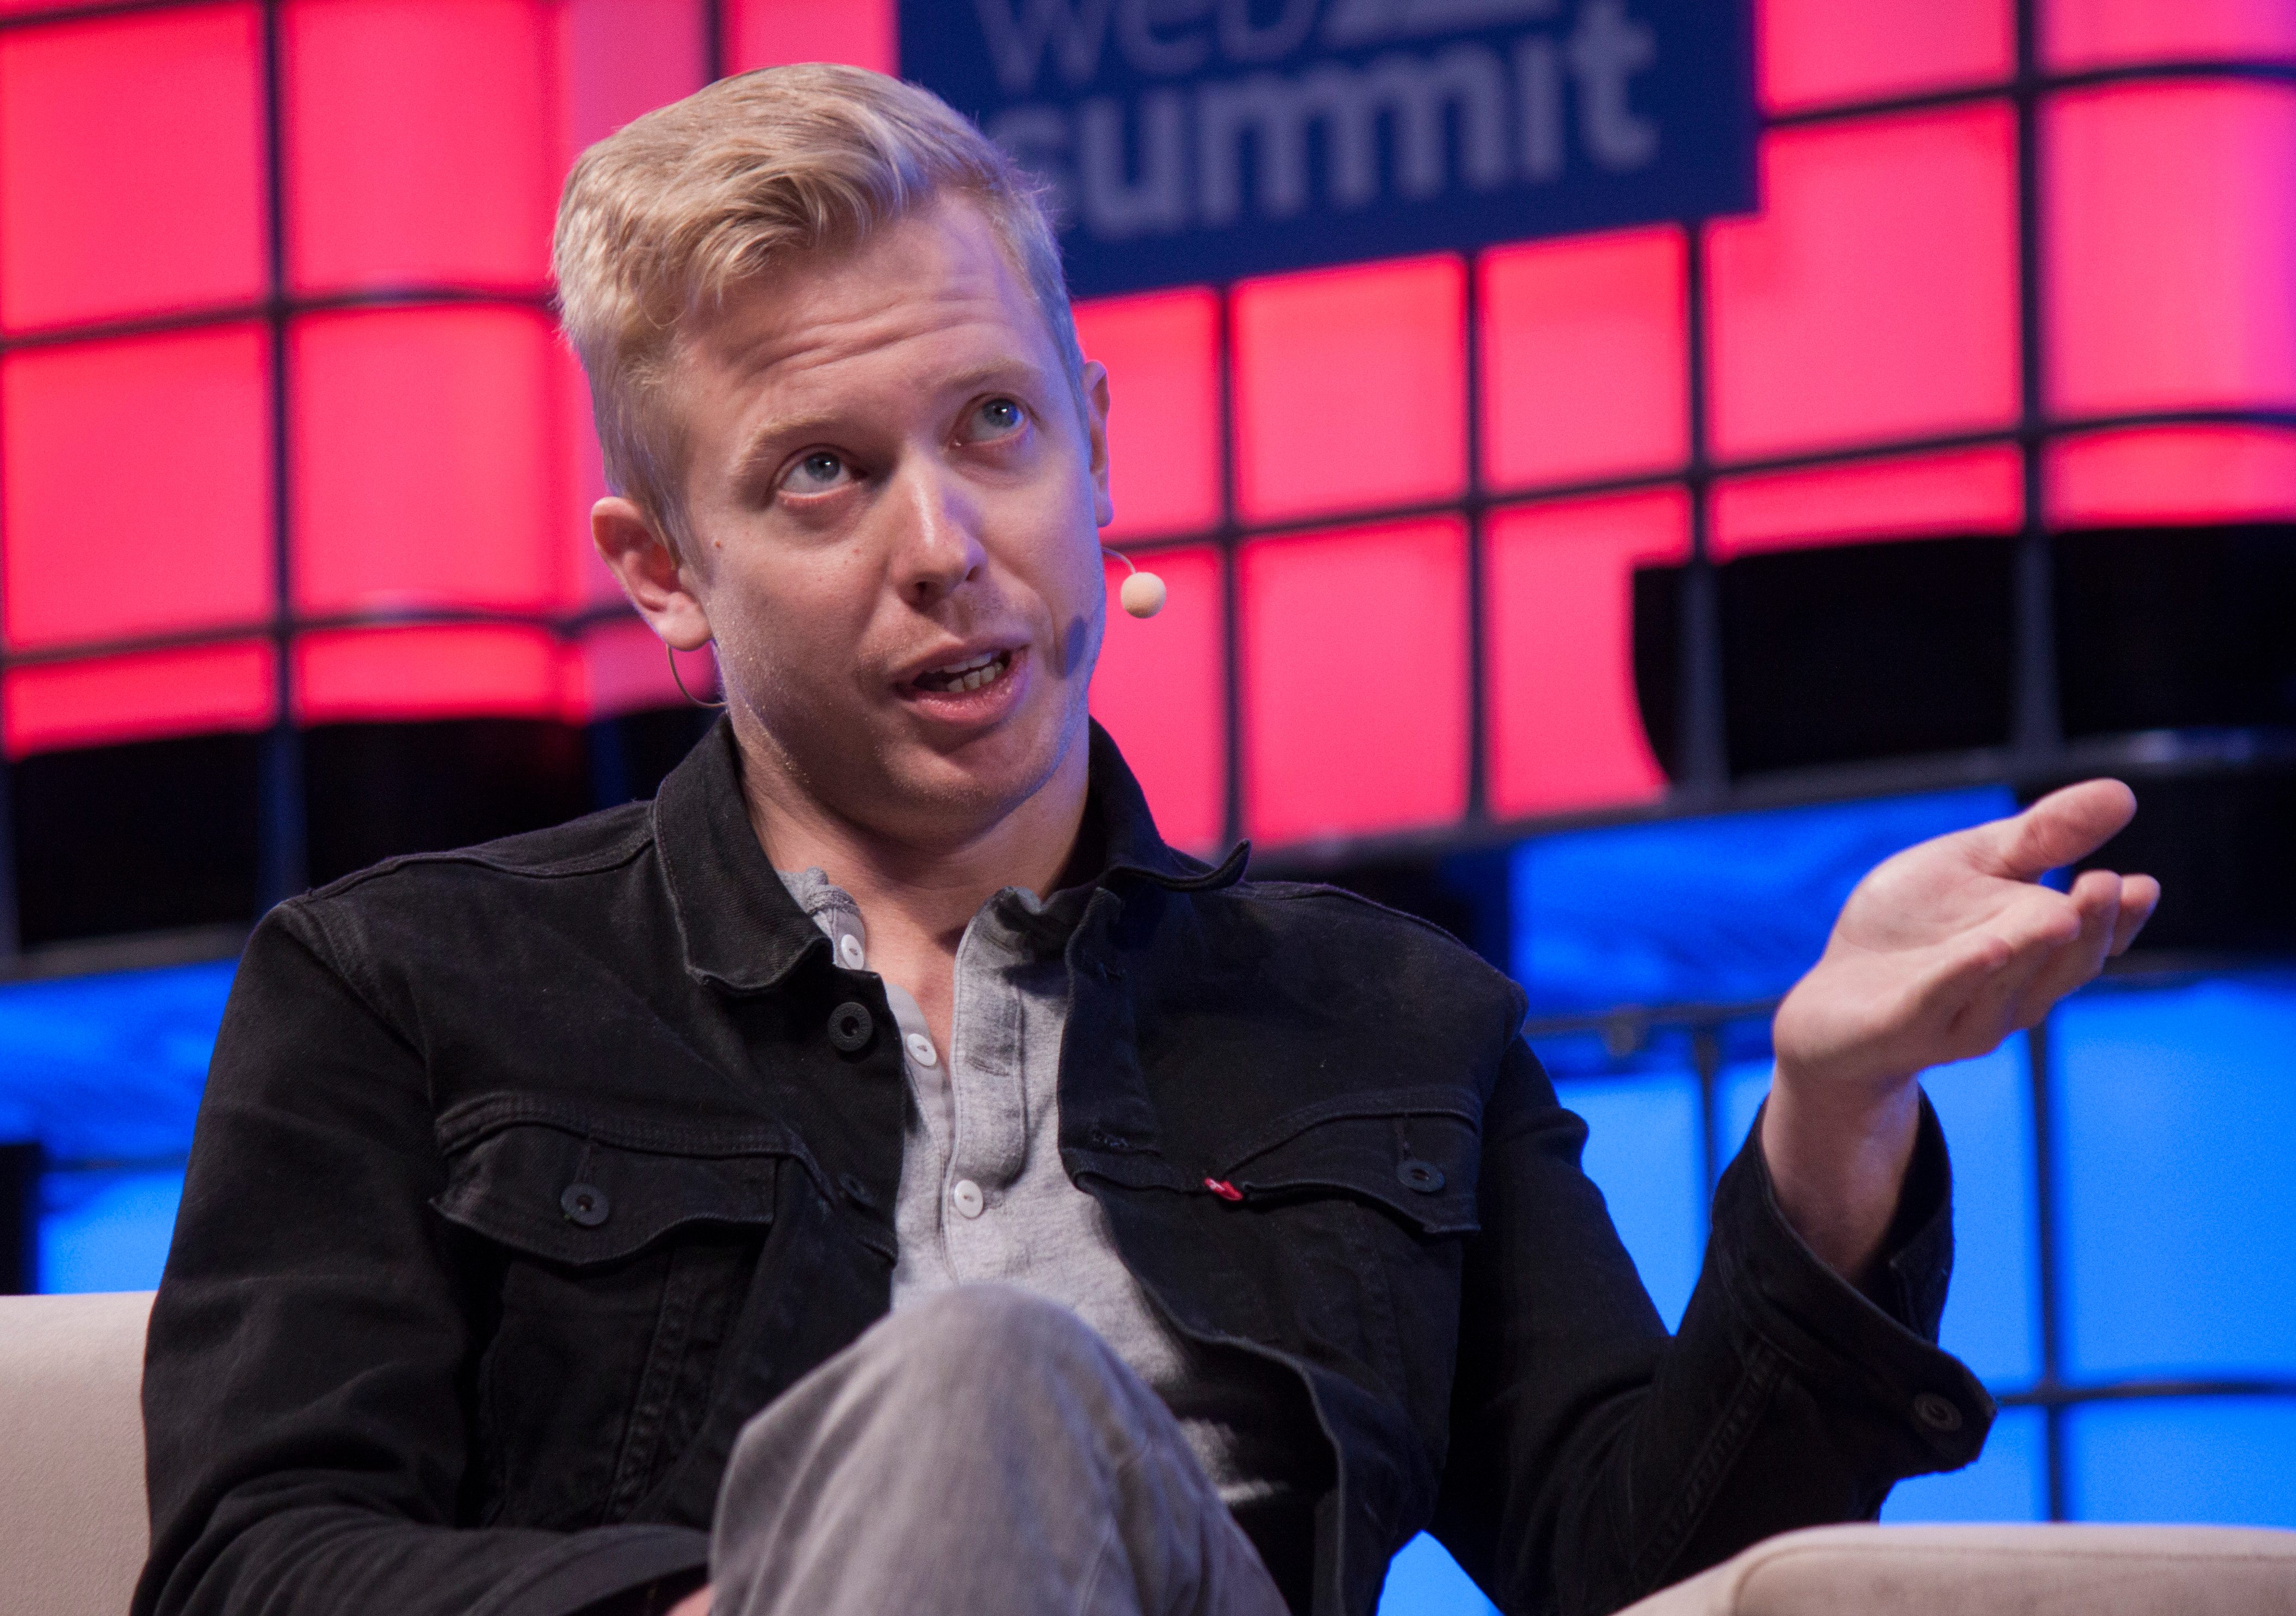 Steve Huffman is the co-founder and CEO of Reddit. (Shutterstock/G Holland)